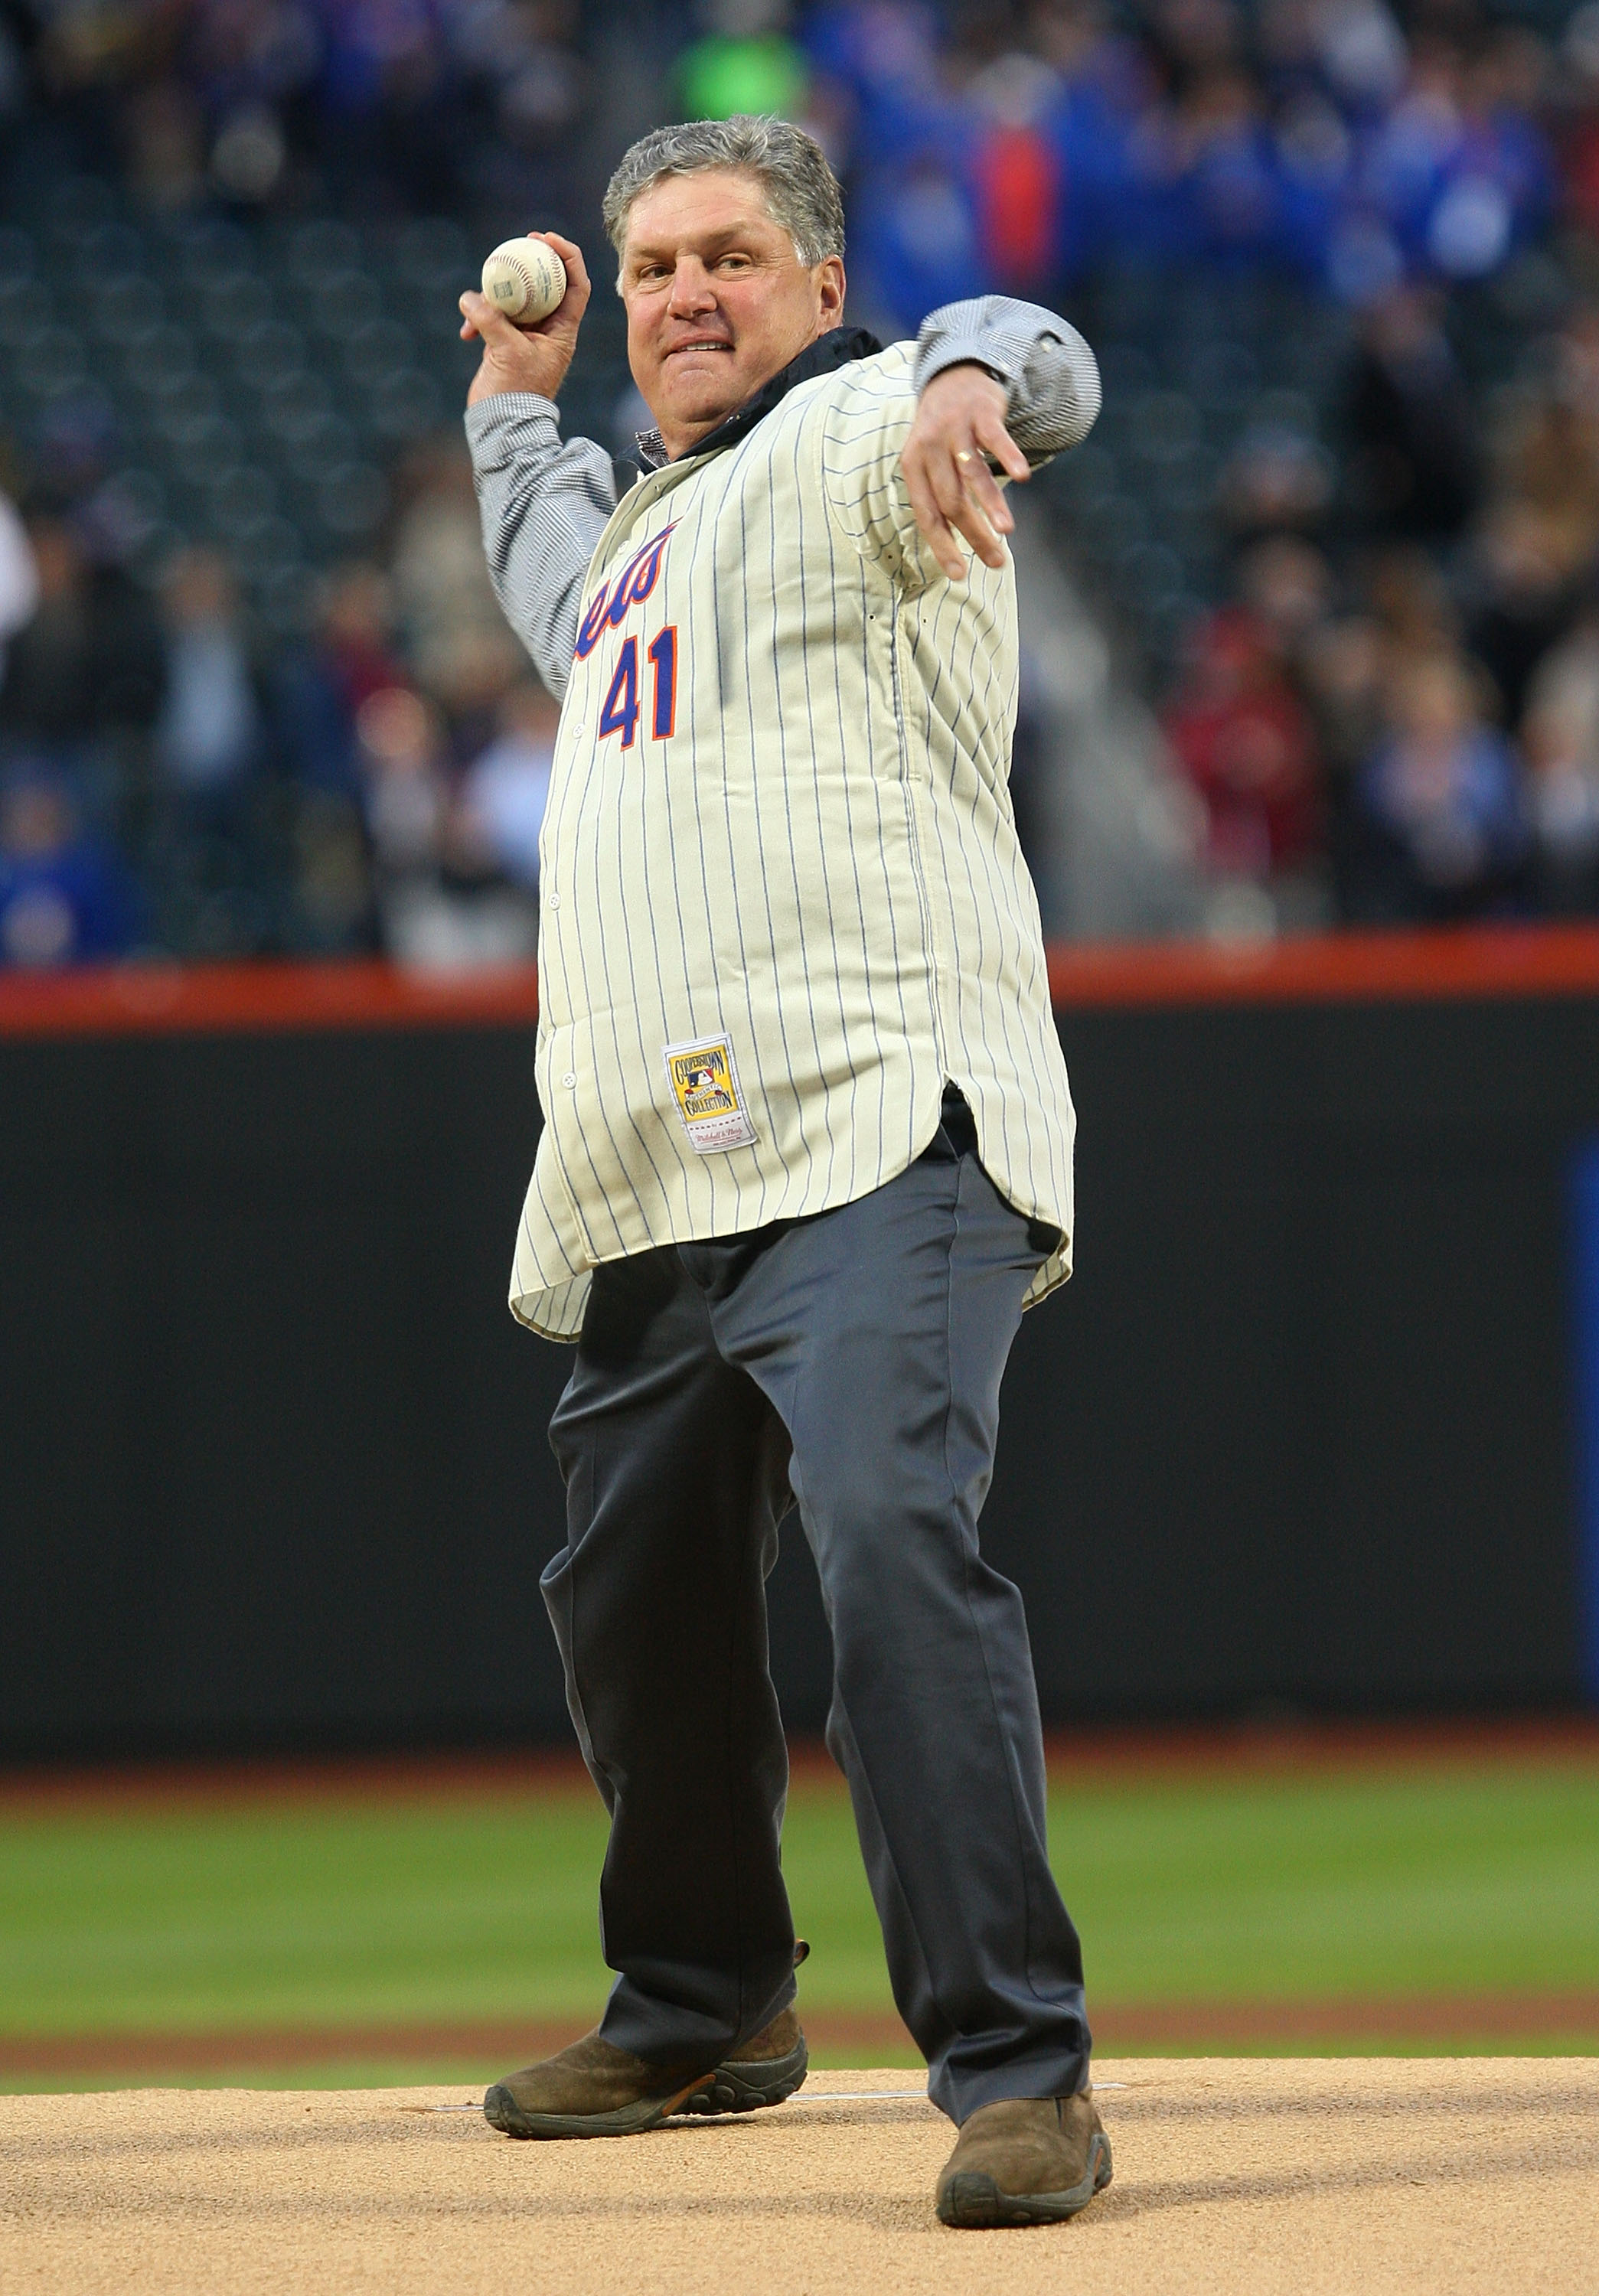 An out of shape Tom Seaver